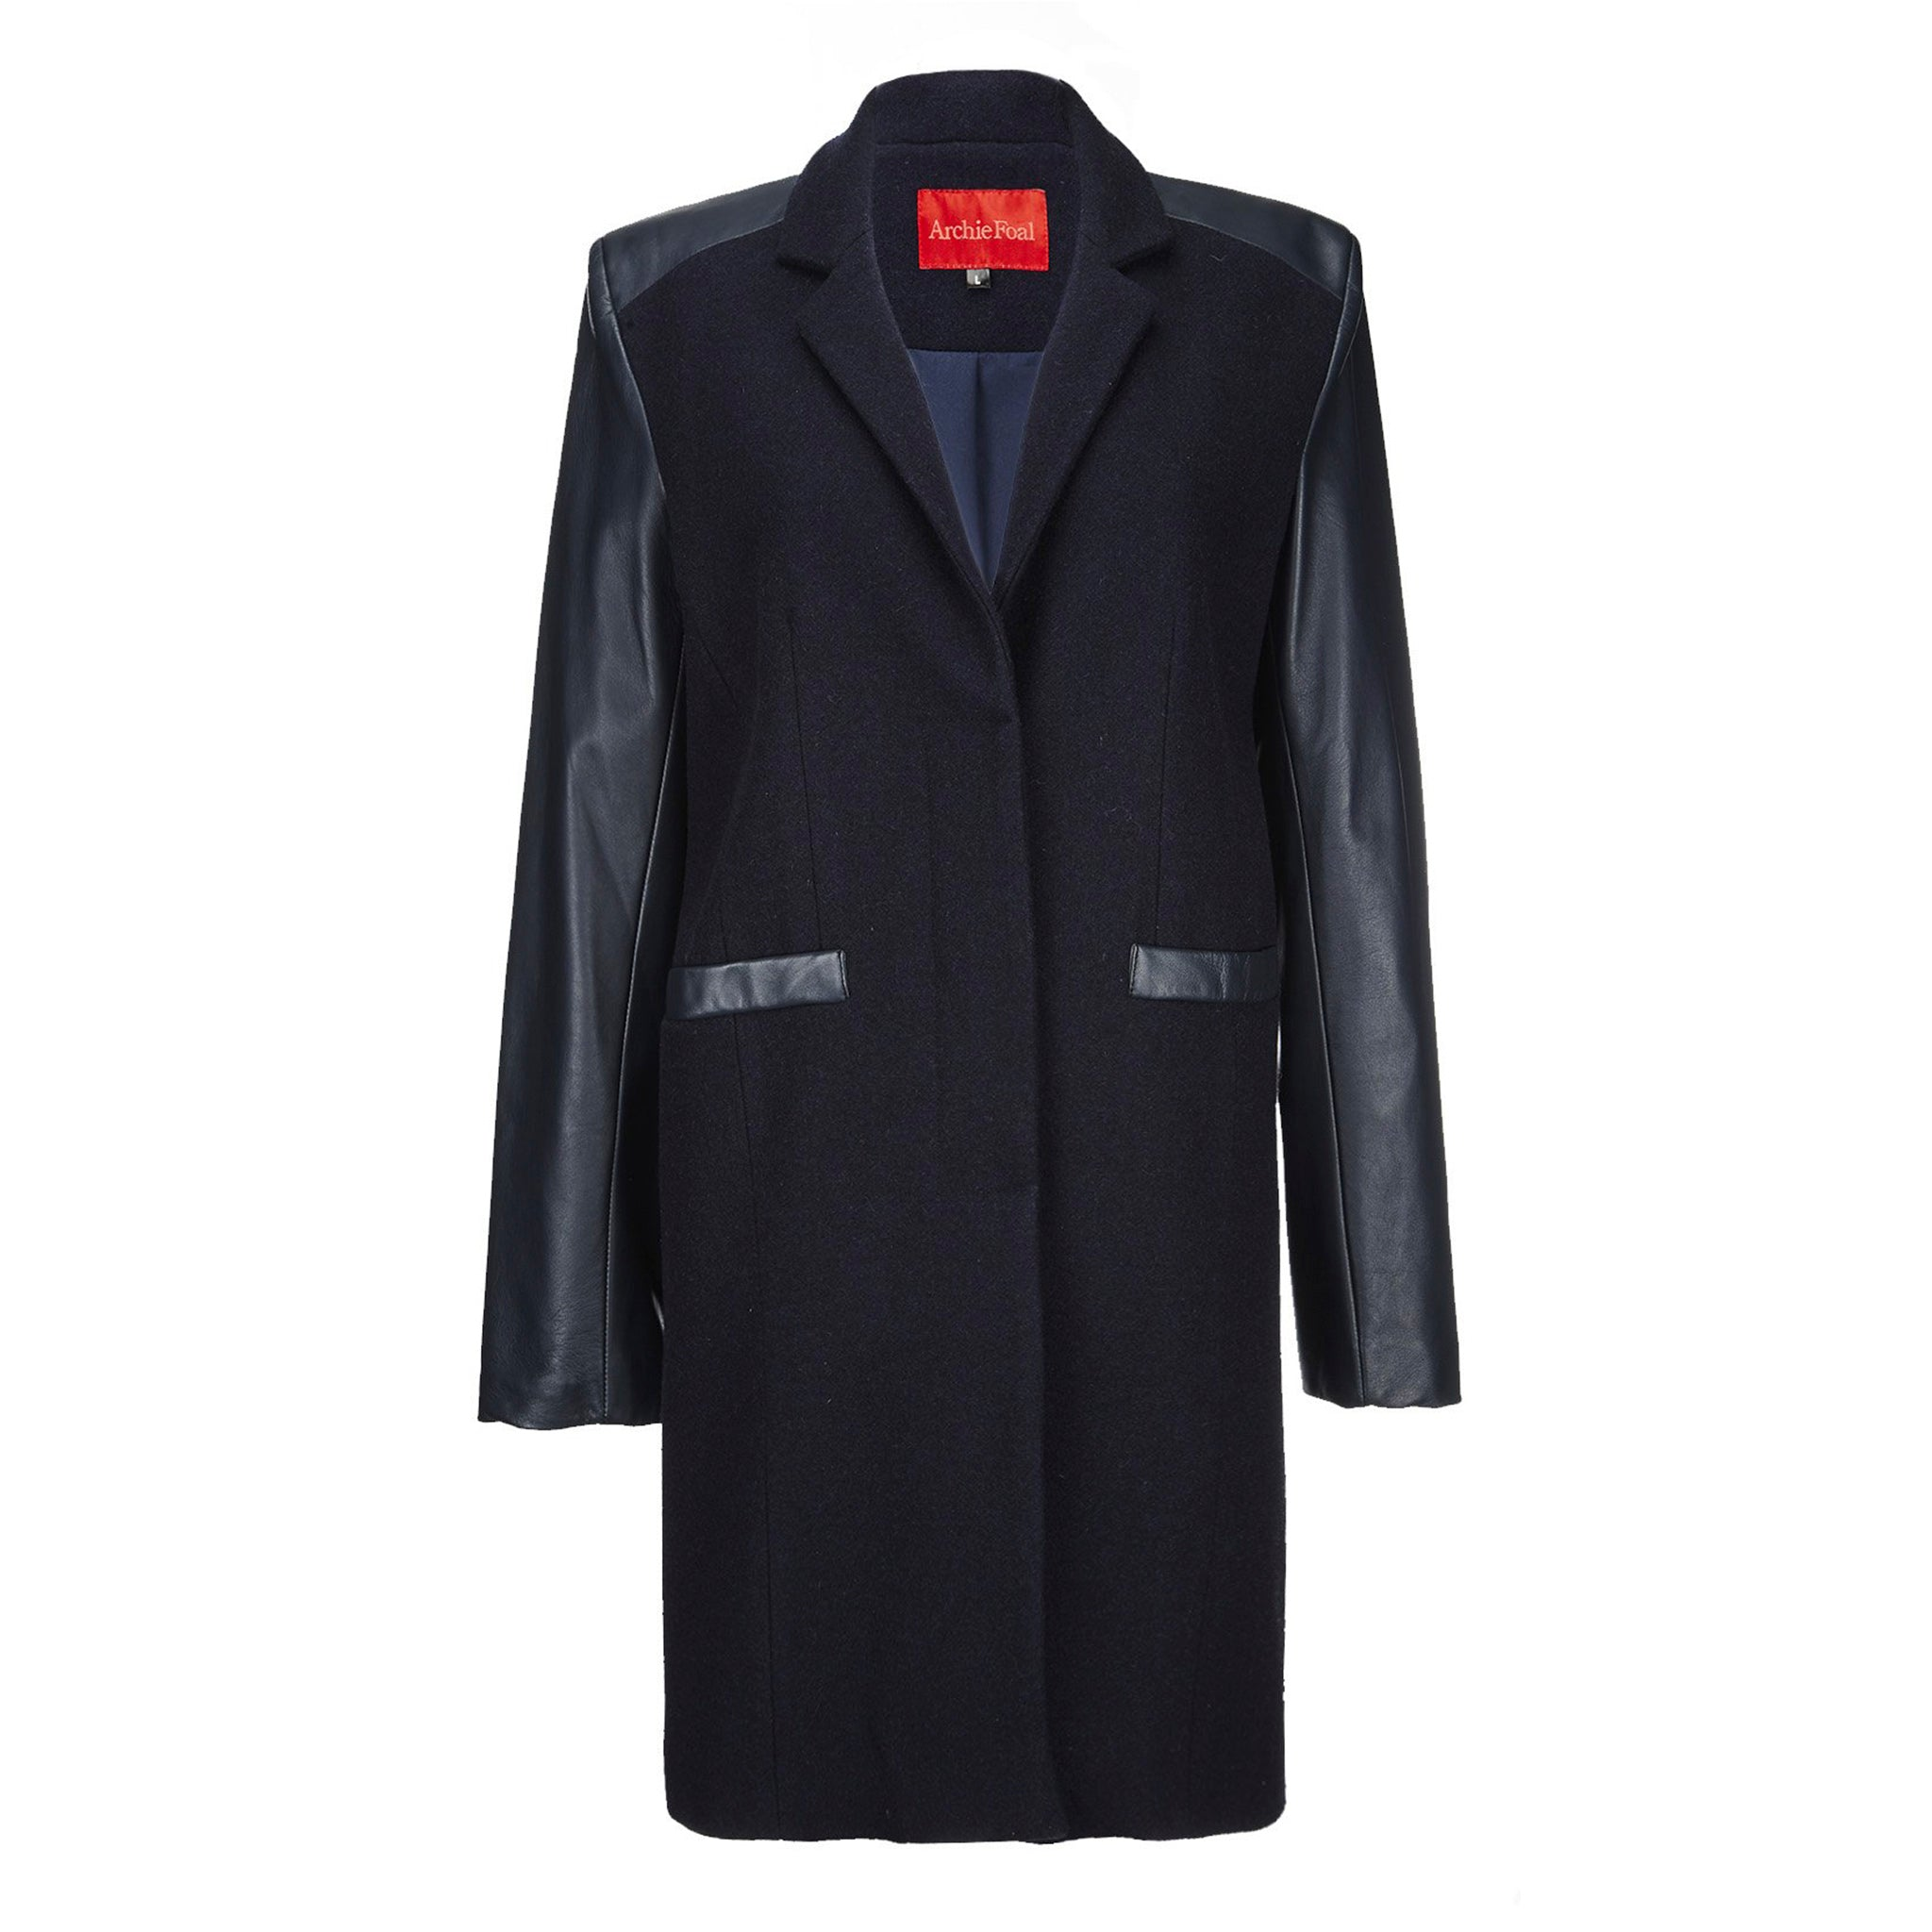 Archie Foal Women's Toril Navy Wool and Leather Coat